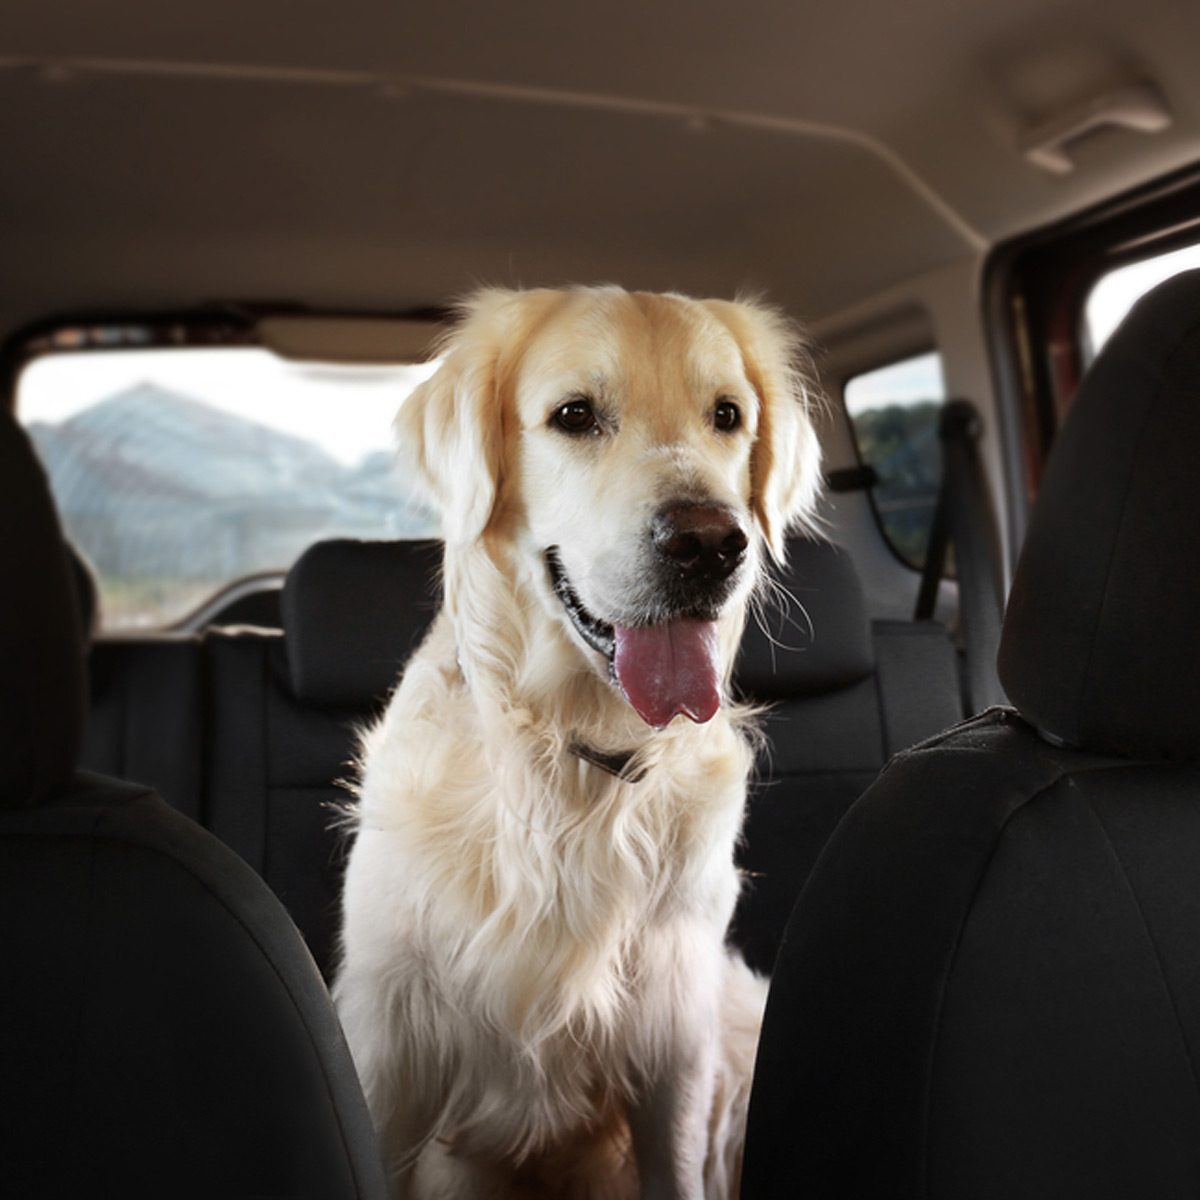 dog in car clean pet fur hair